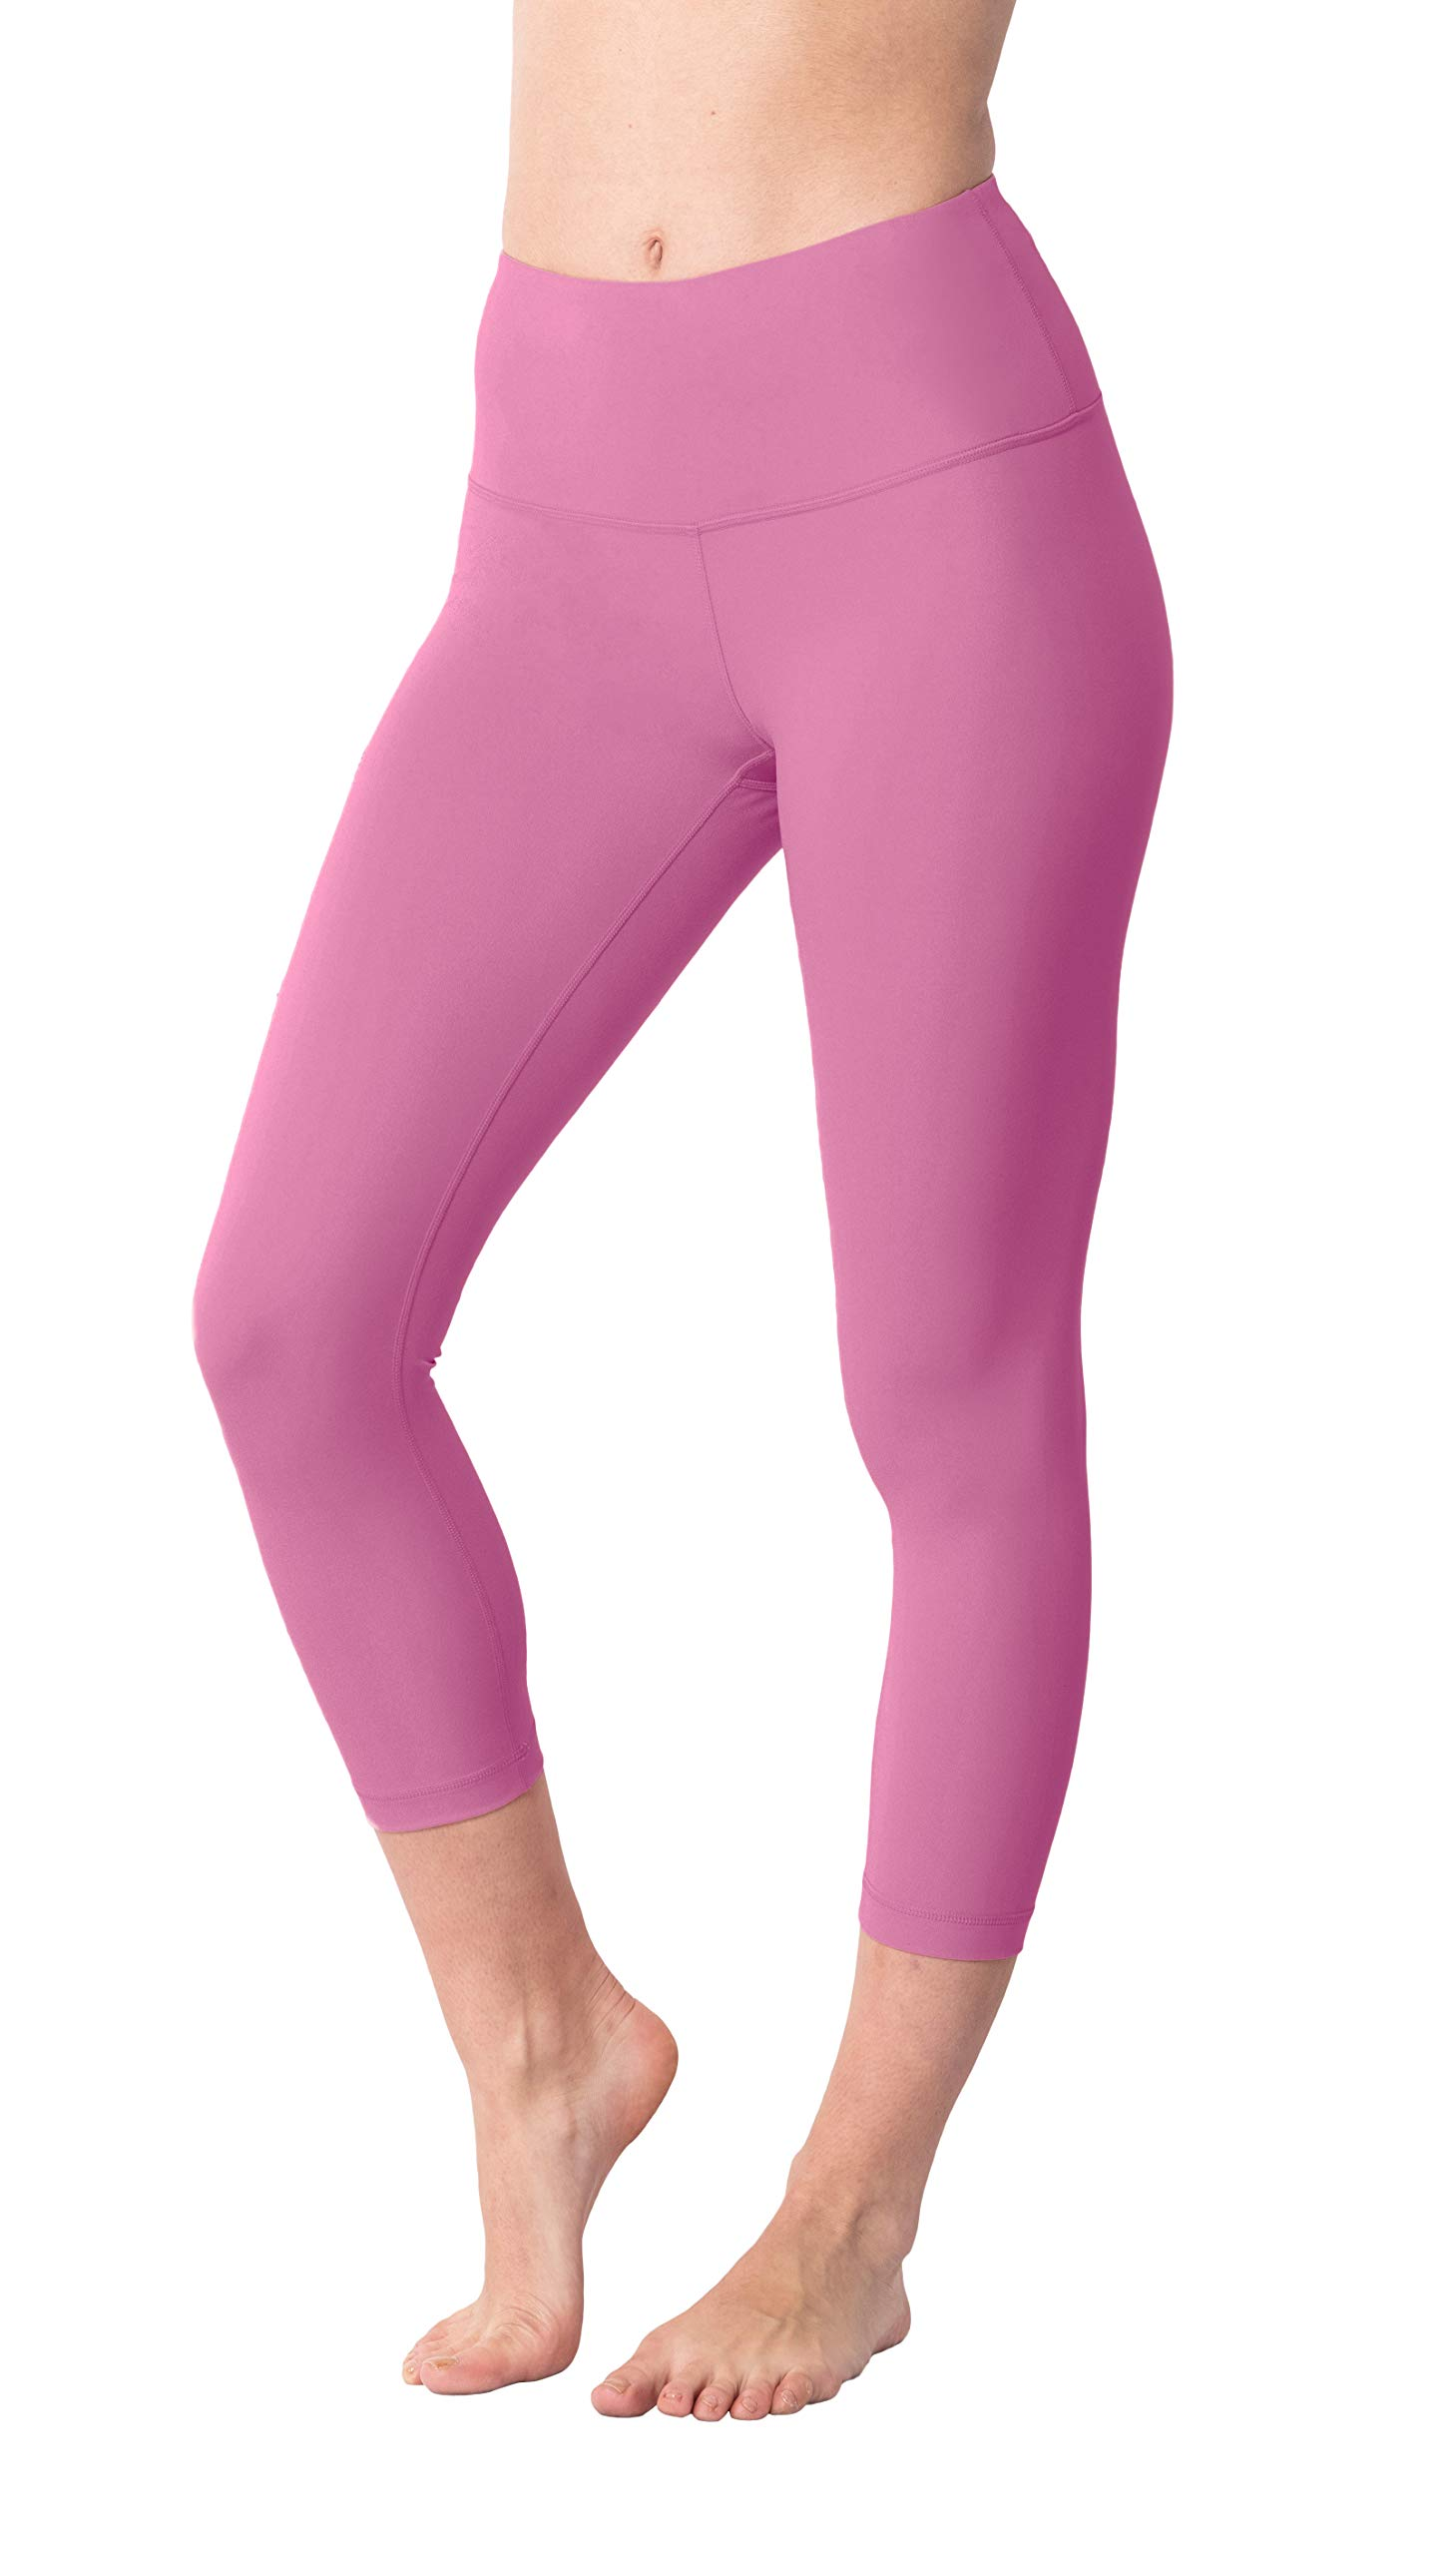 Yogalicious High Waist Ultra Soft Lightweight Capris - High Rise Yoga Pants - Lychee Pink - Medium by Yogalicious